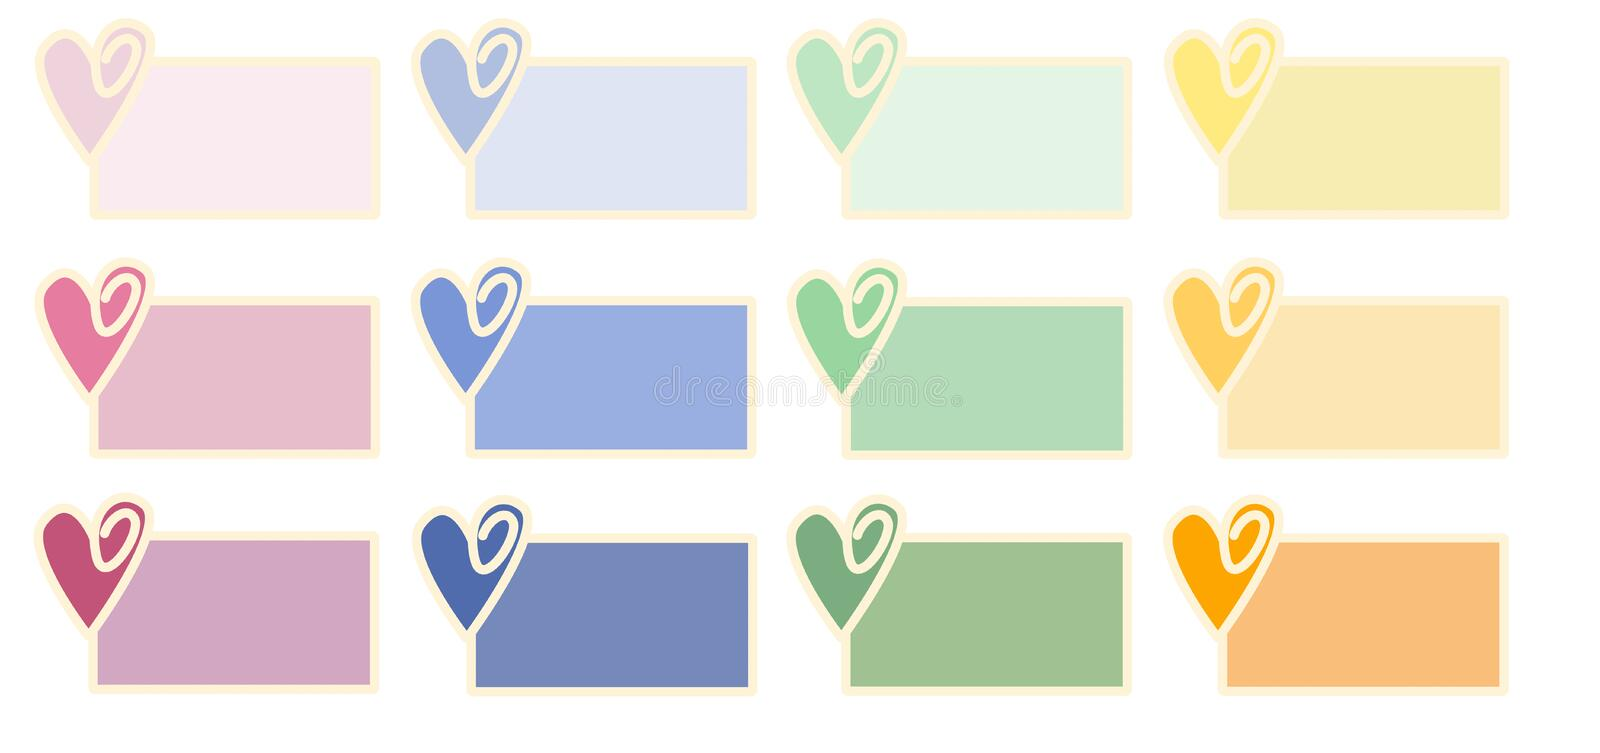 Download Valentine Tags stock illustration. Image of yellow, lilac - 7524190